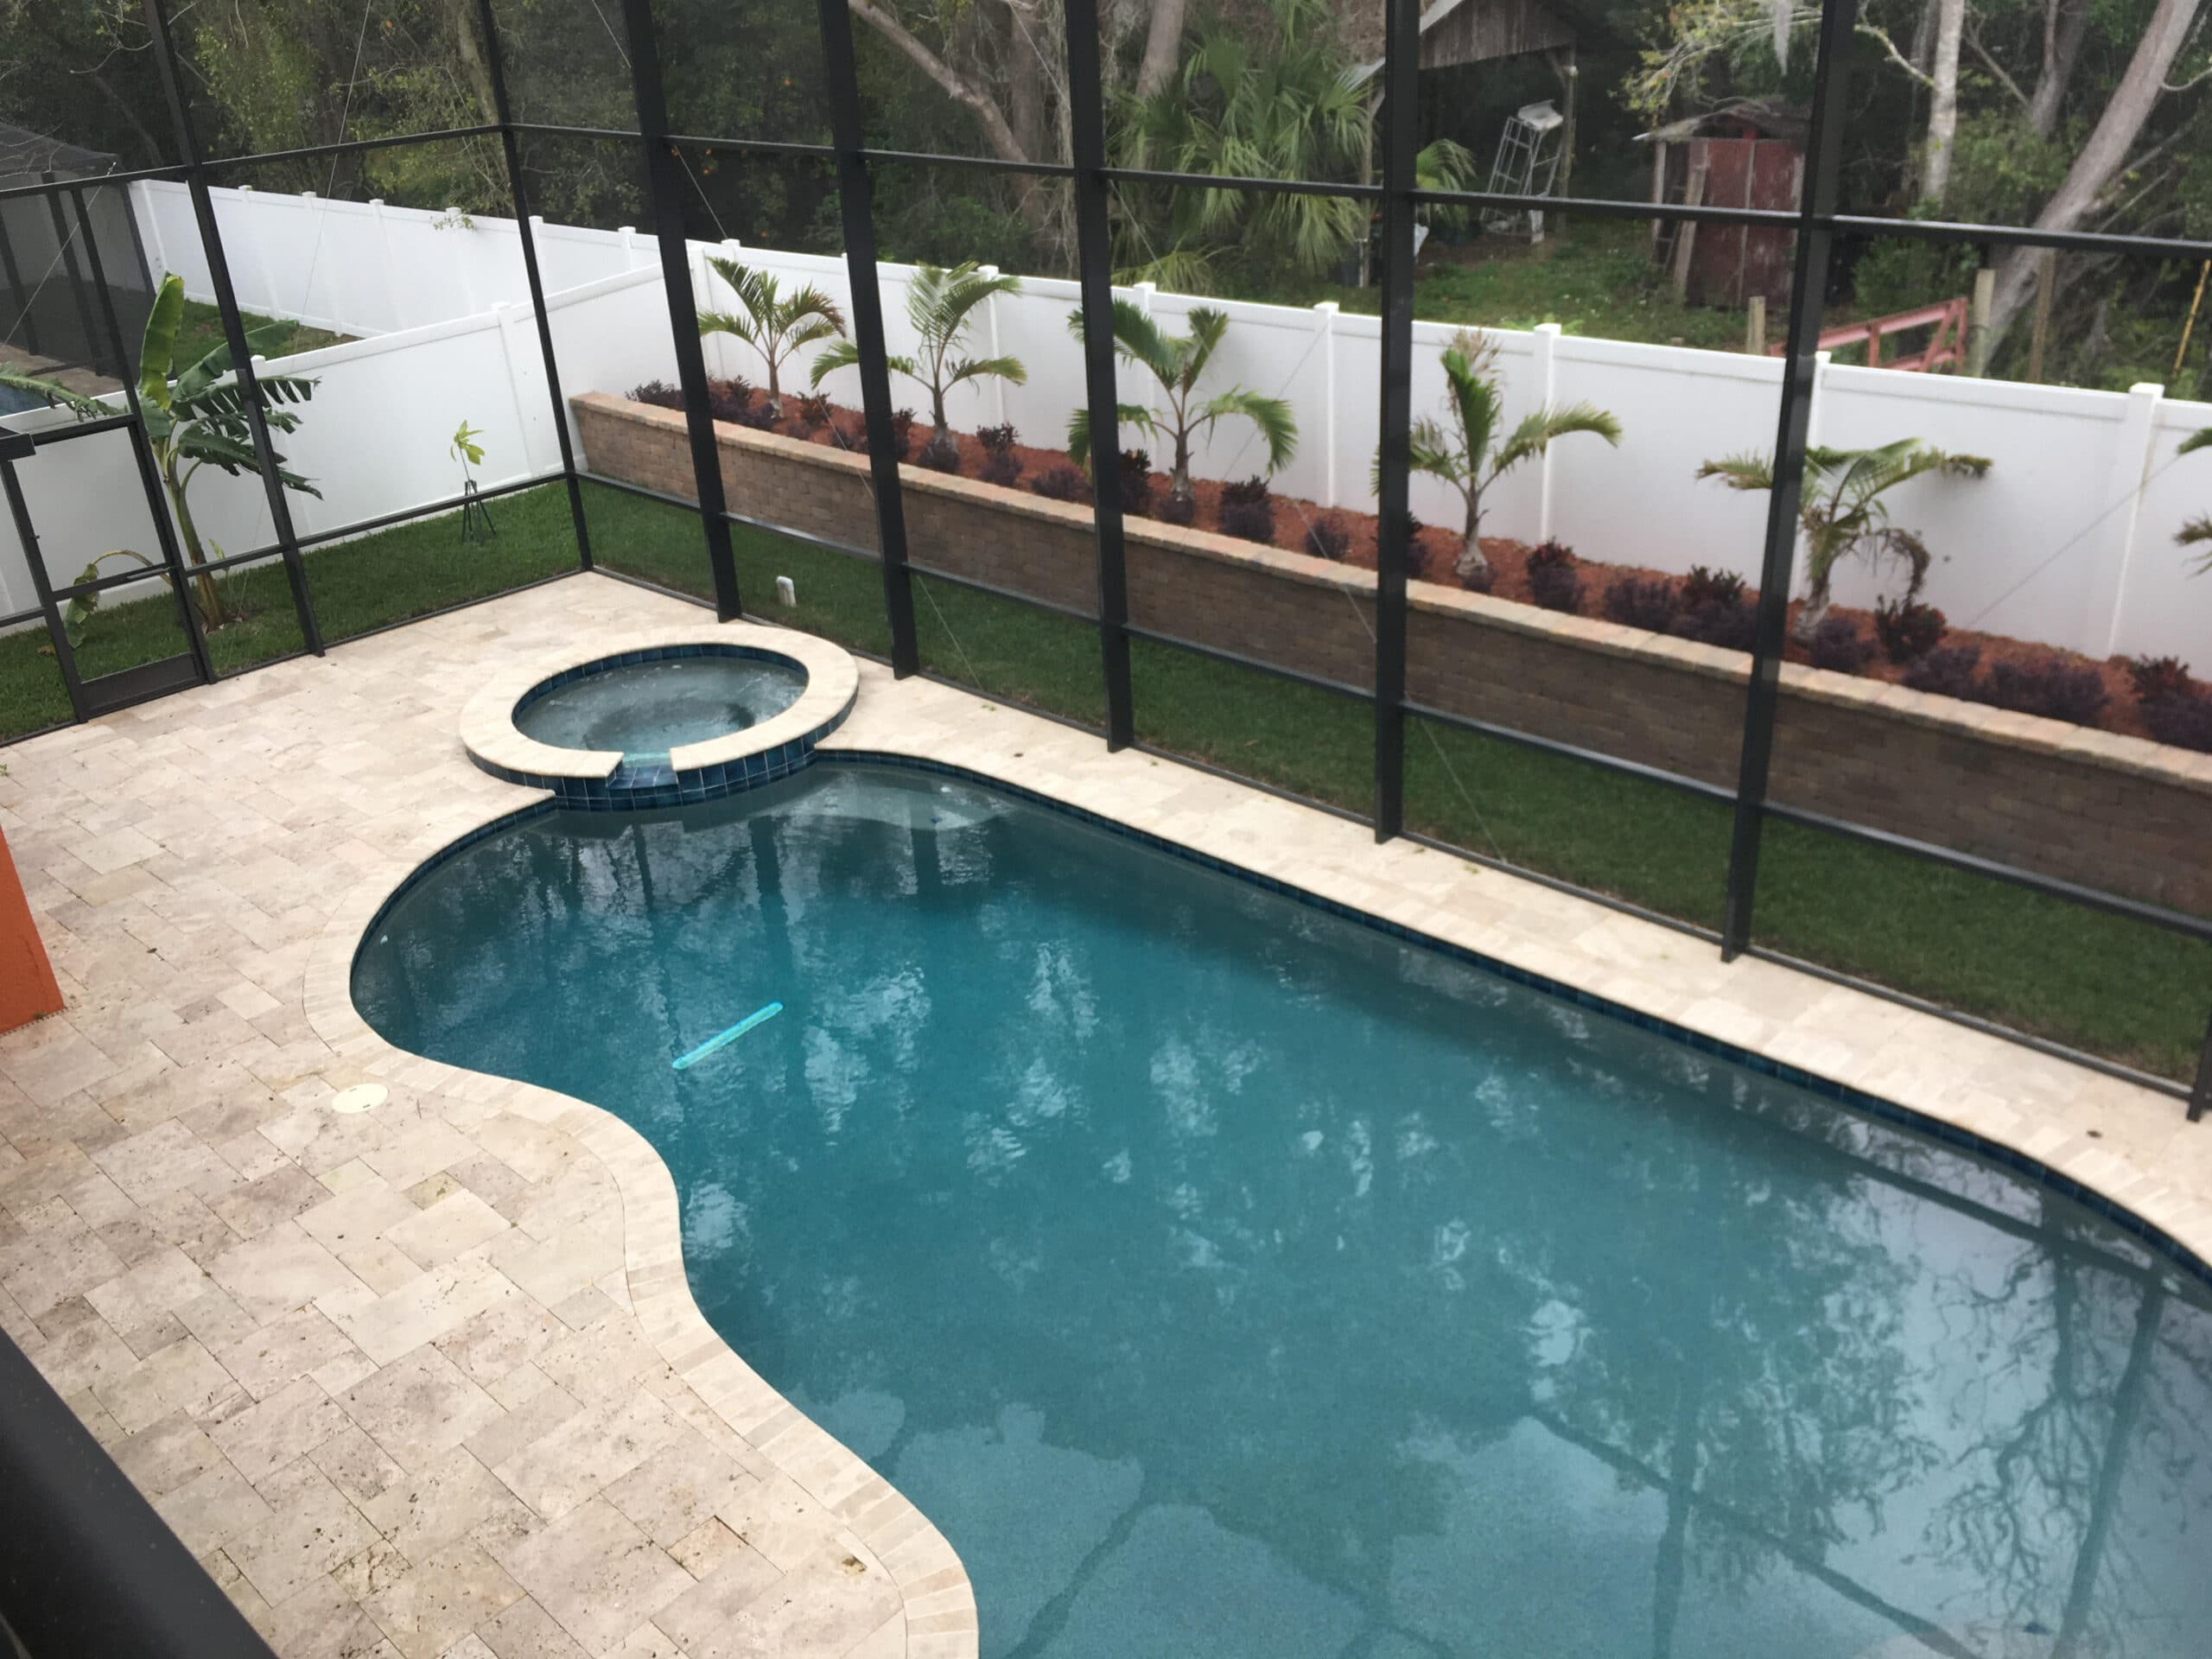 Bronze two story pool enclosure overhead view with travertine pool deck